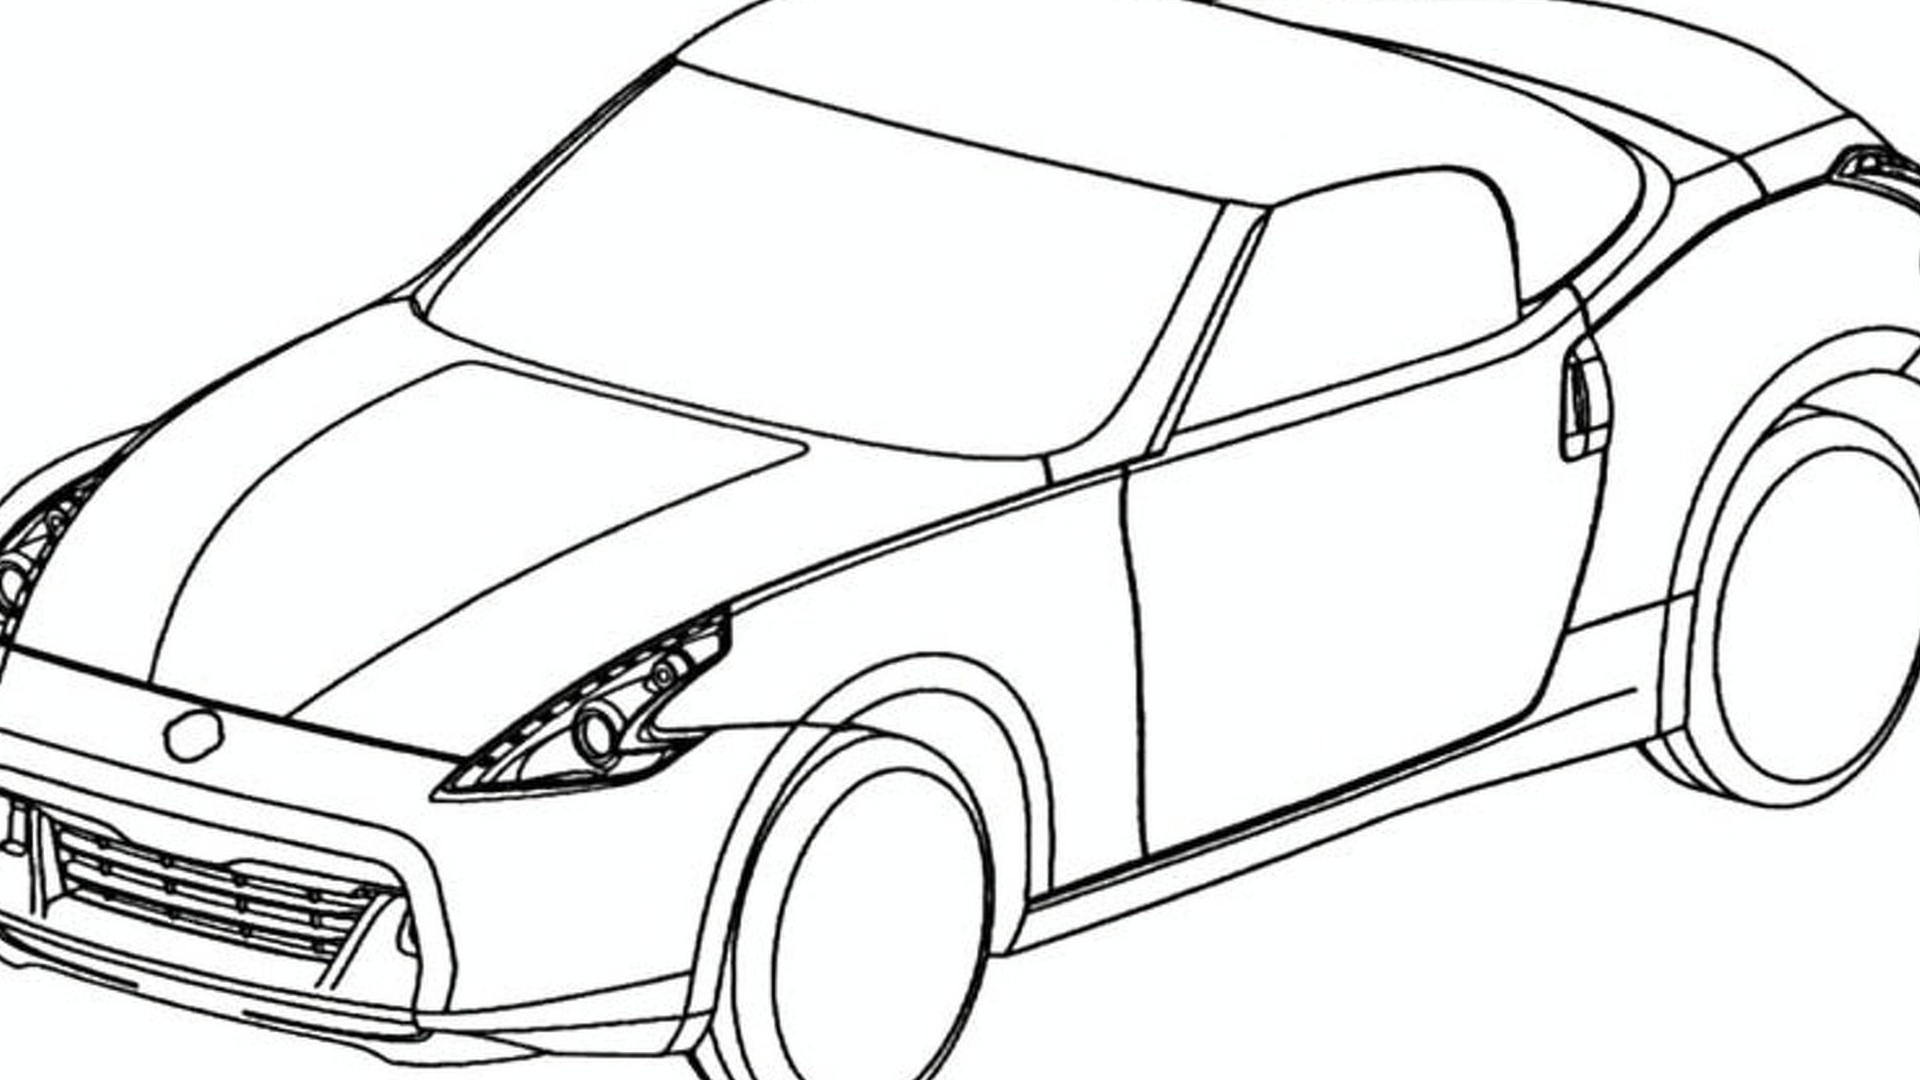 Nissan Skyline Drawing At Free For Personal Use 370z Engine Diagram 1920x1080 350z Diagrams 528683 Of